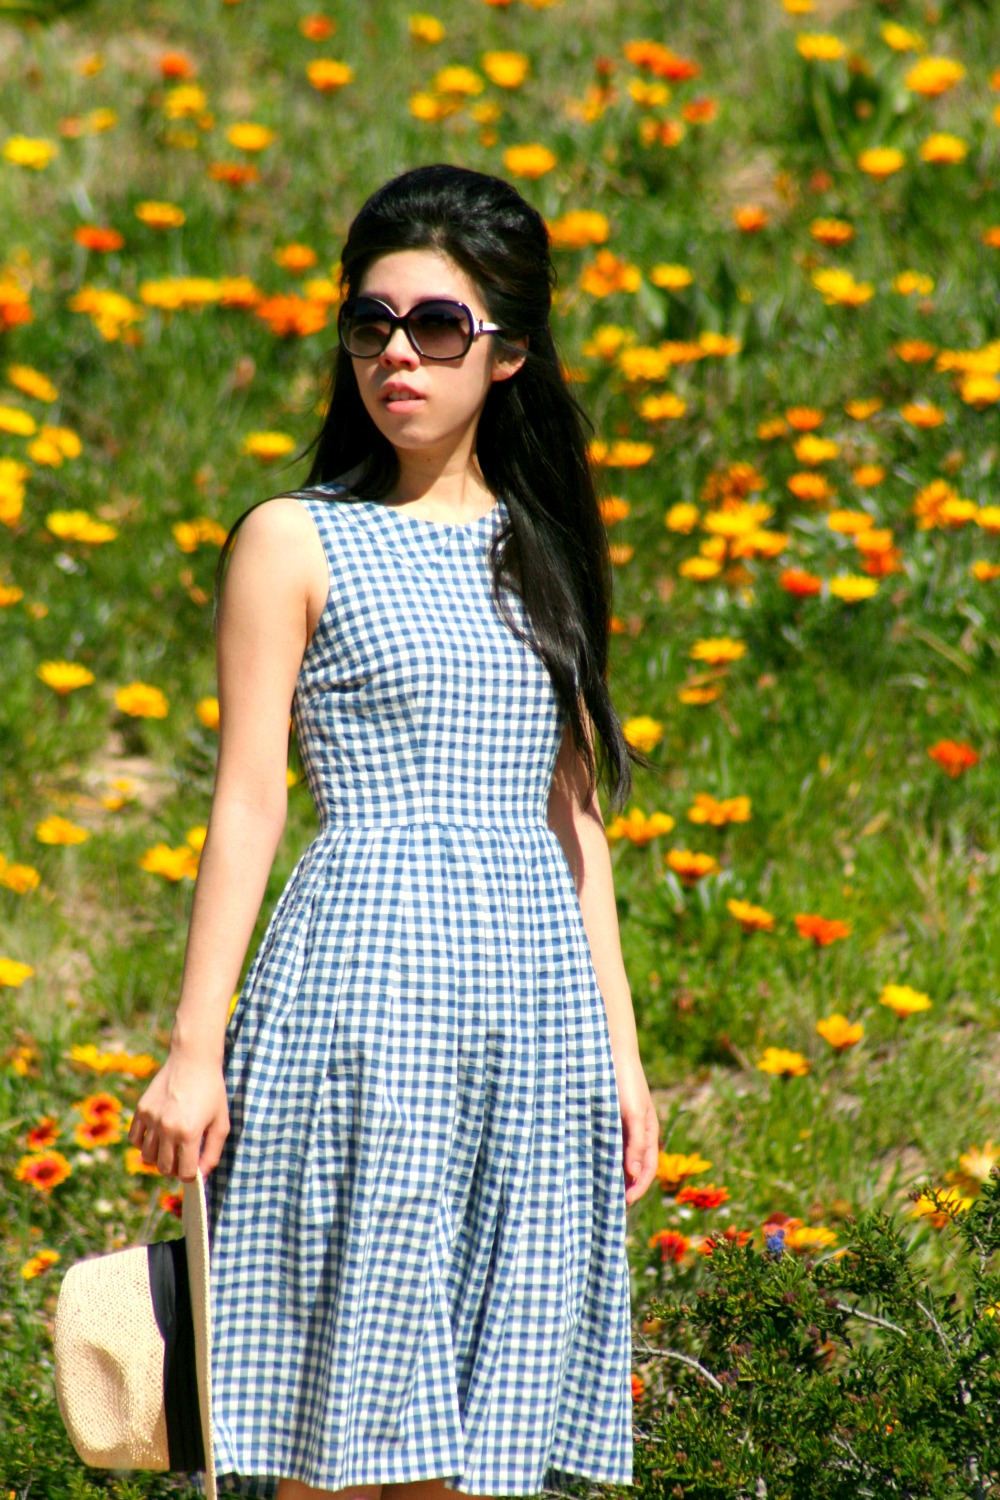 Gingham Print_Midi Dress_Nordstrom Fashion_How to Make Cheap Look Chic_Invictus_Adrienne Nguyen